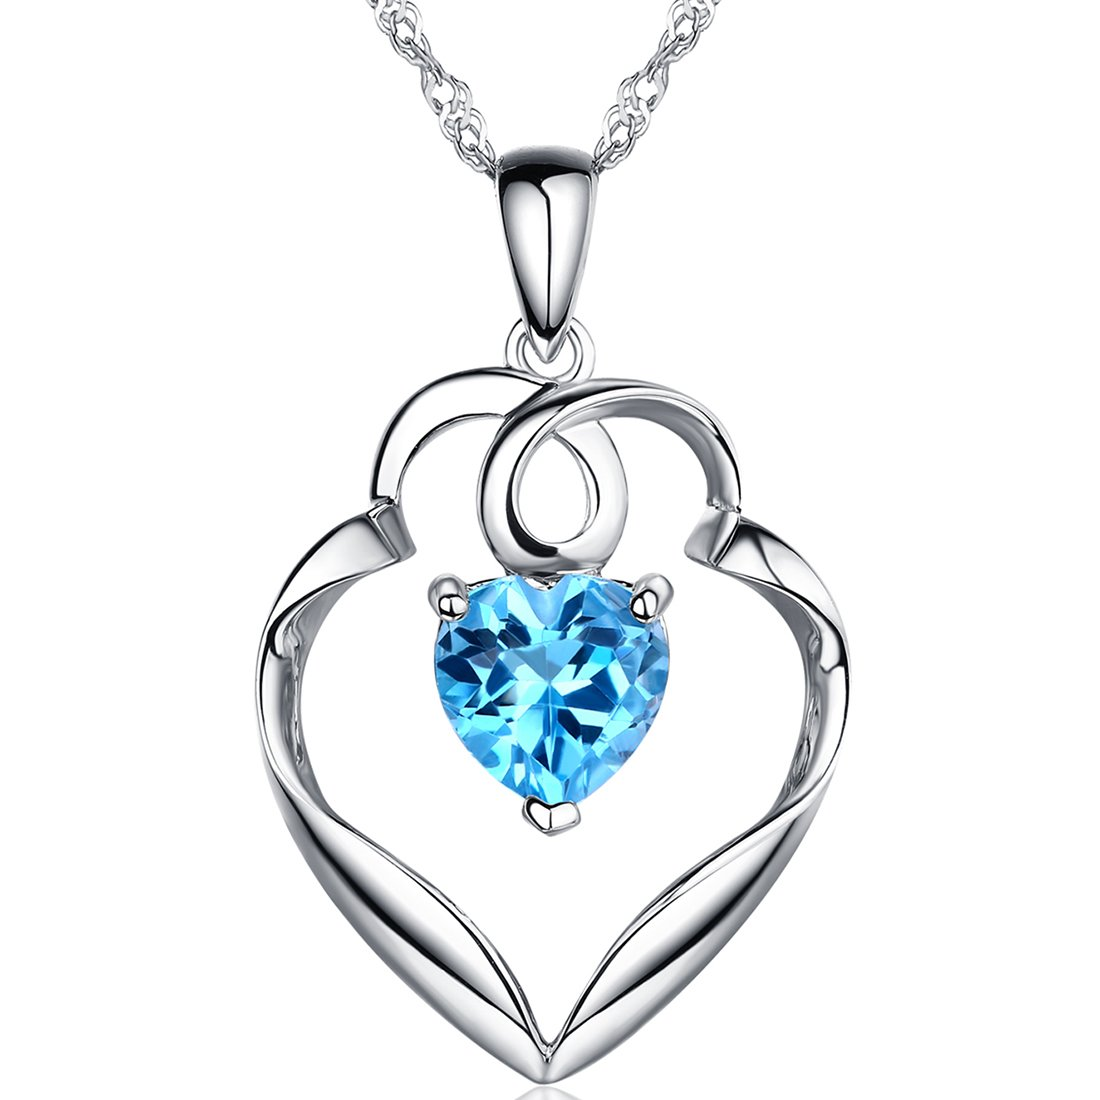 """♥Gifts for Her♥ Natural Swiss Blue Topaz Genuine Gemstone Pendant Necklace """"Guardian Heart"""" Sterling Silver Fine Jewelry Gift for Women for Her"""